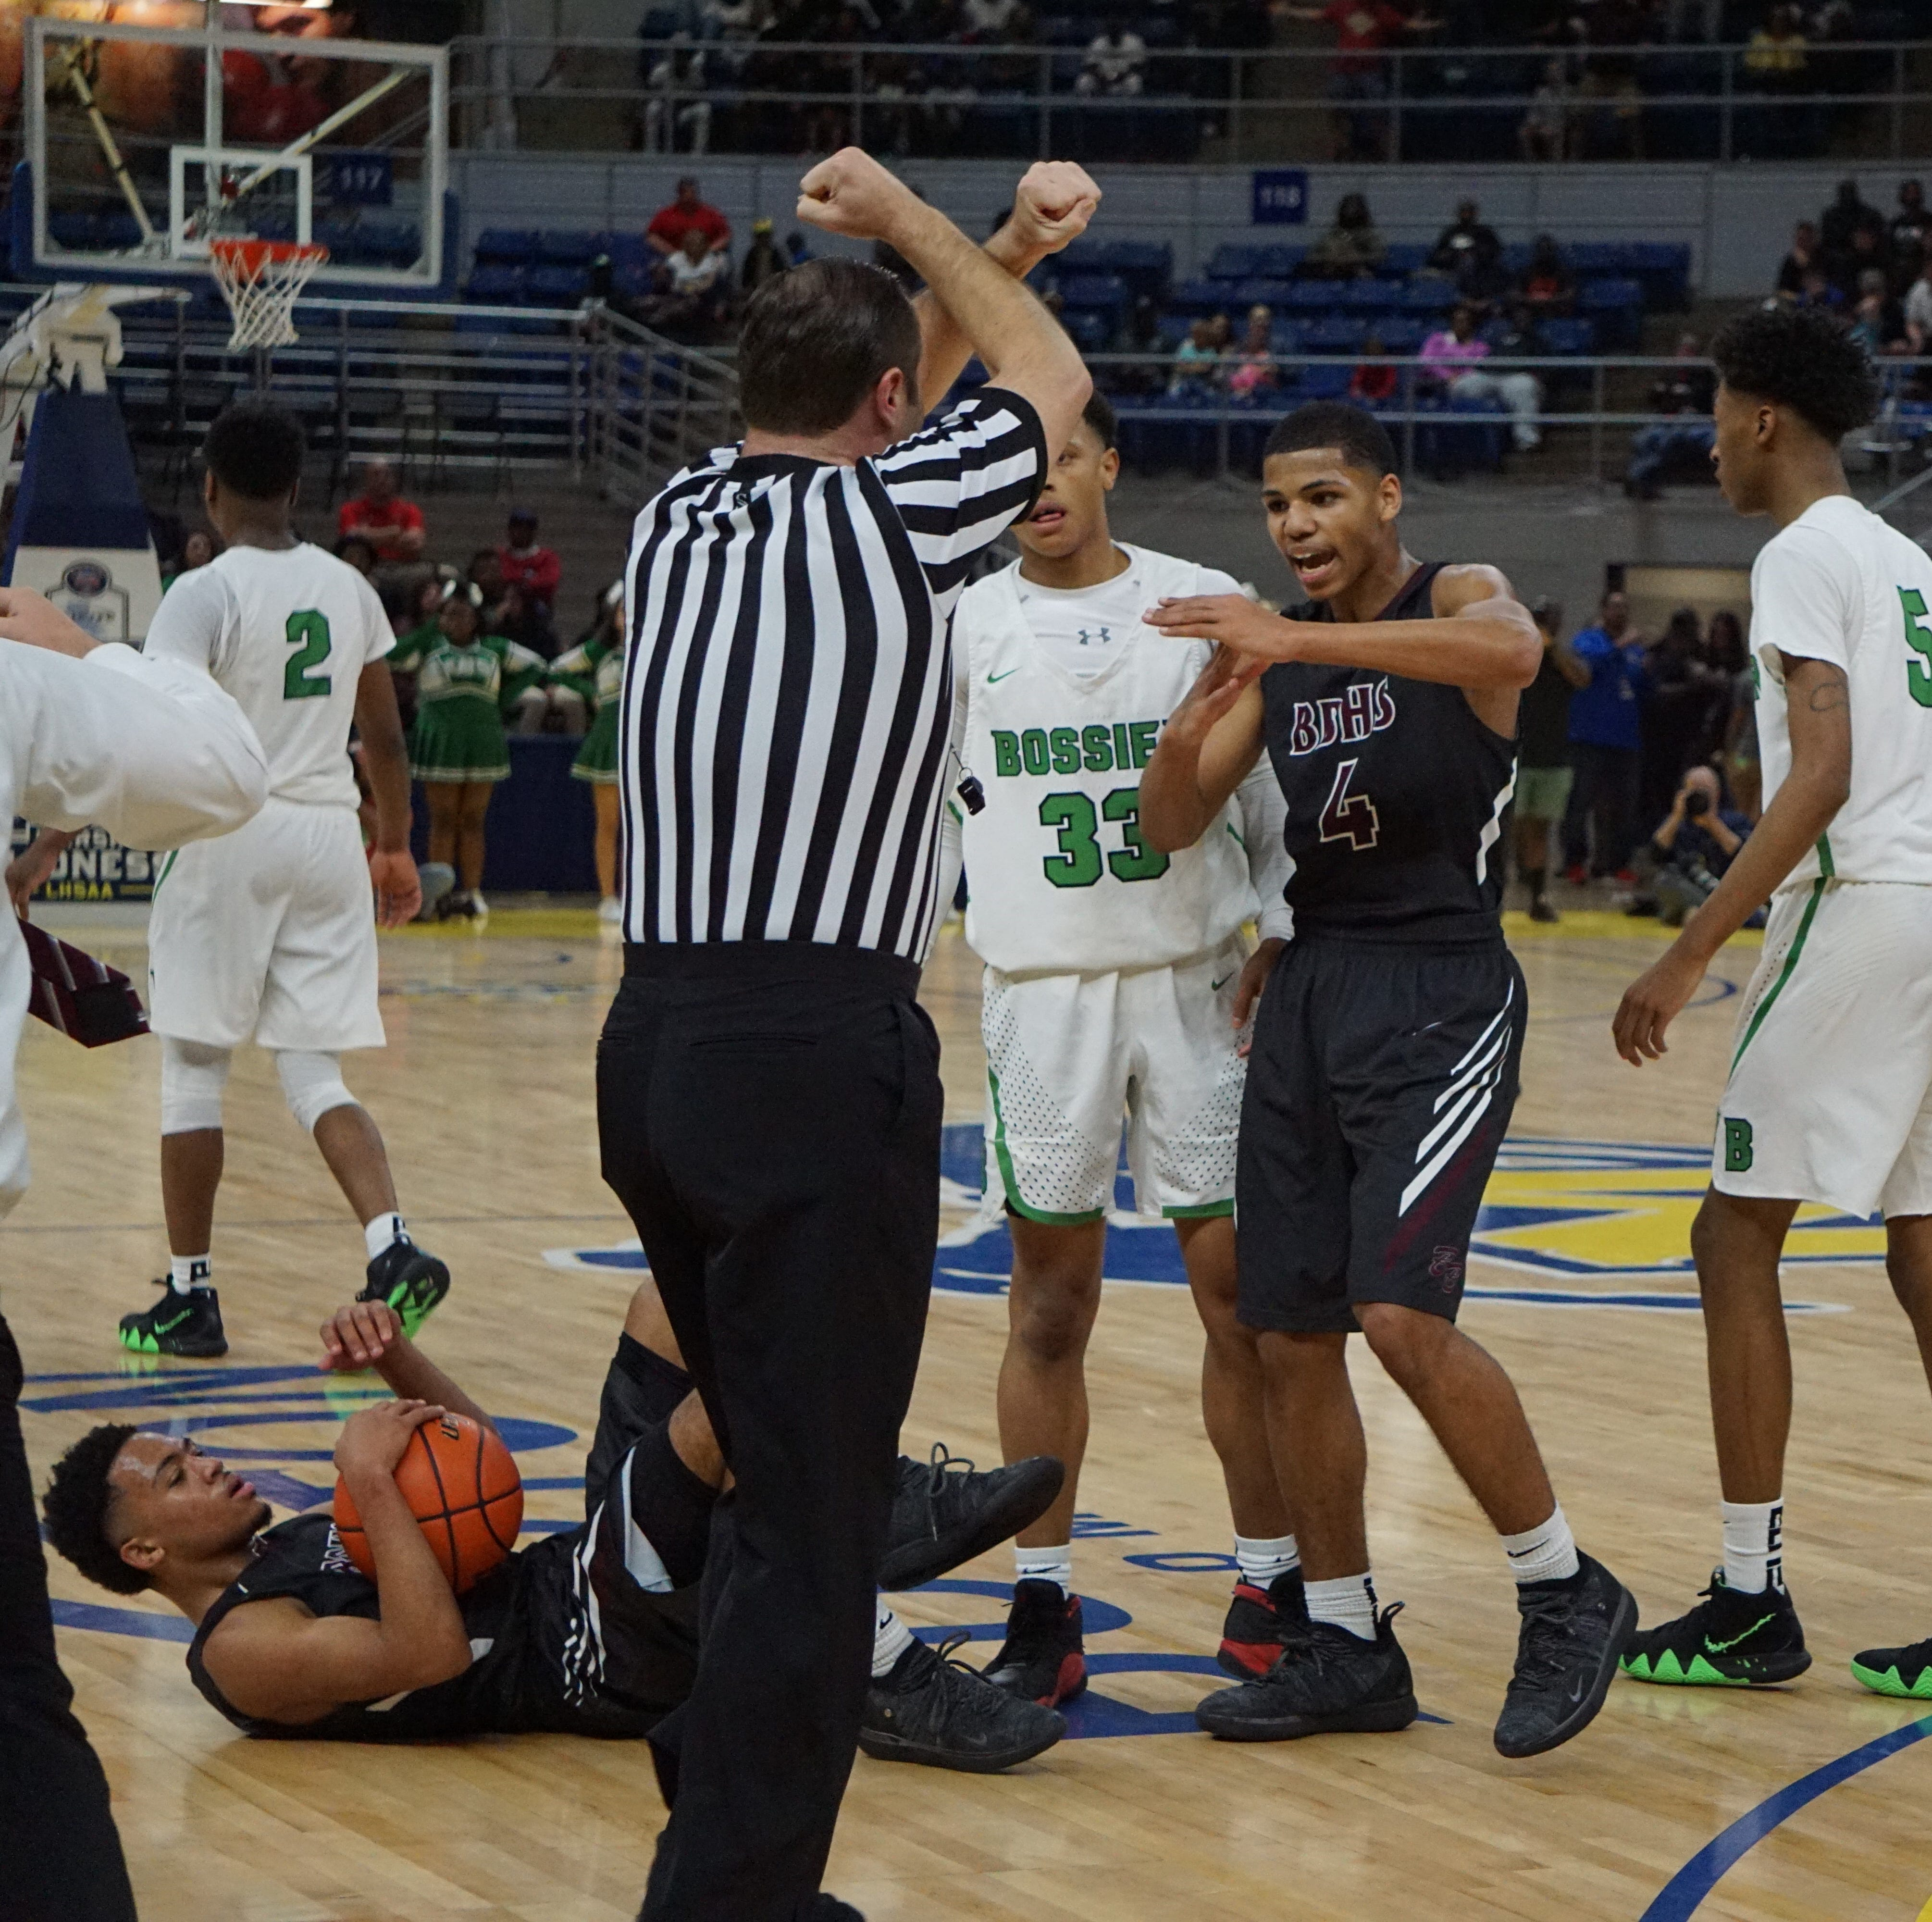 Fouled out: Bossier ousted in 4A title game